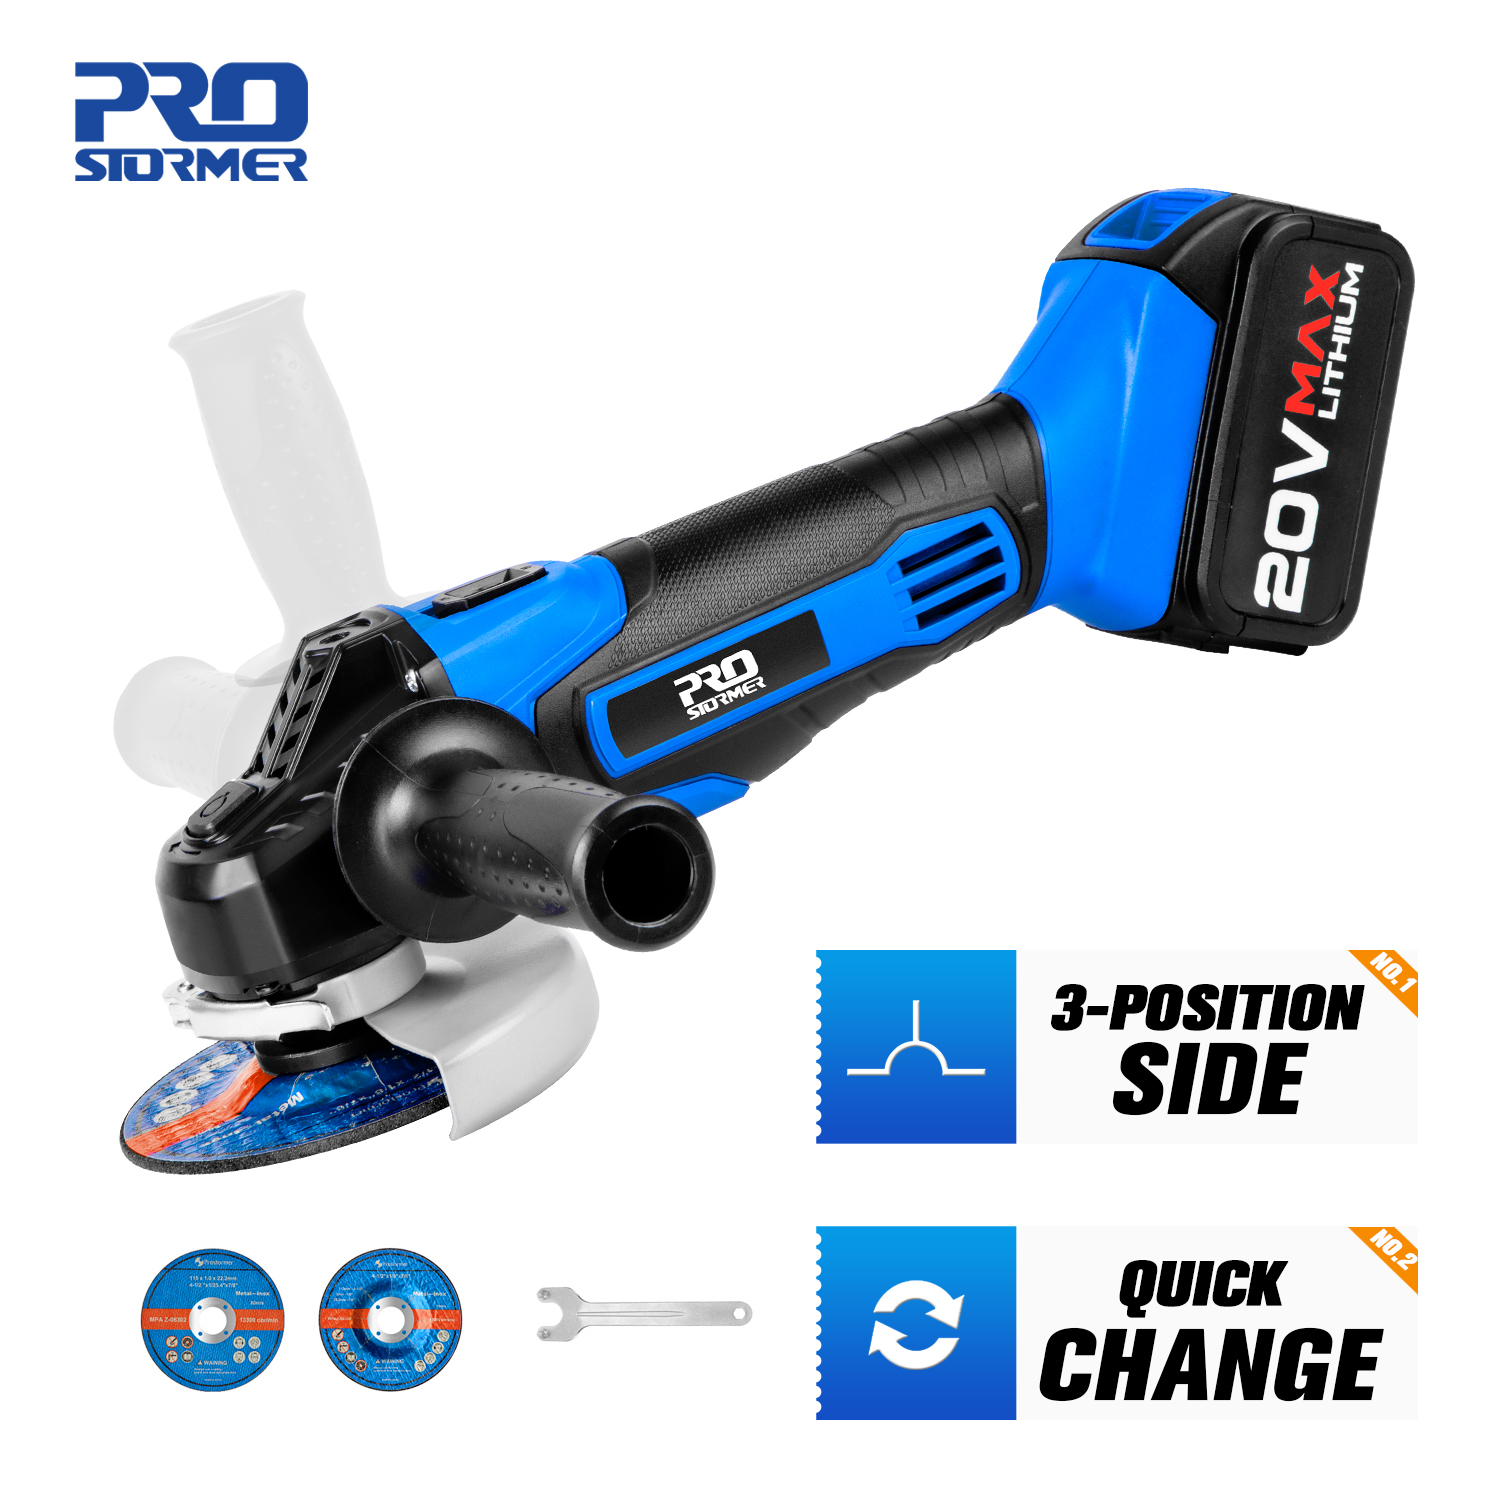 Cordless Angle Grinder 20V Lithium Ion 4000mAh Battery Machine Cutting Electric Angle Grinder Grinding Power Tool By PROSTORMER Grinders    - AliExpress